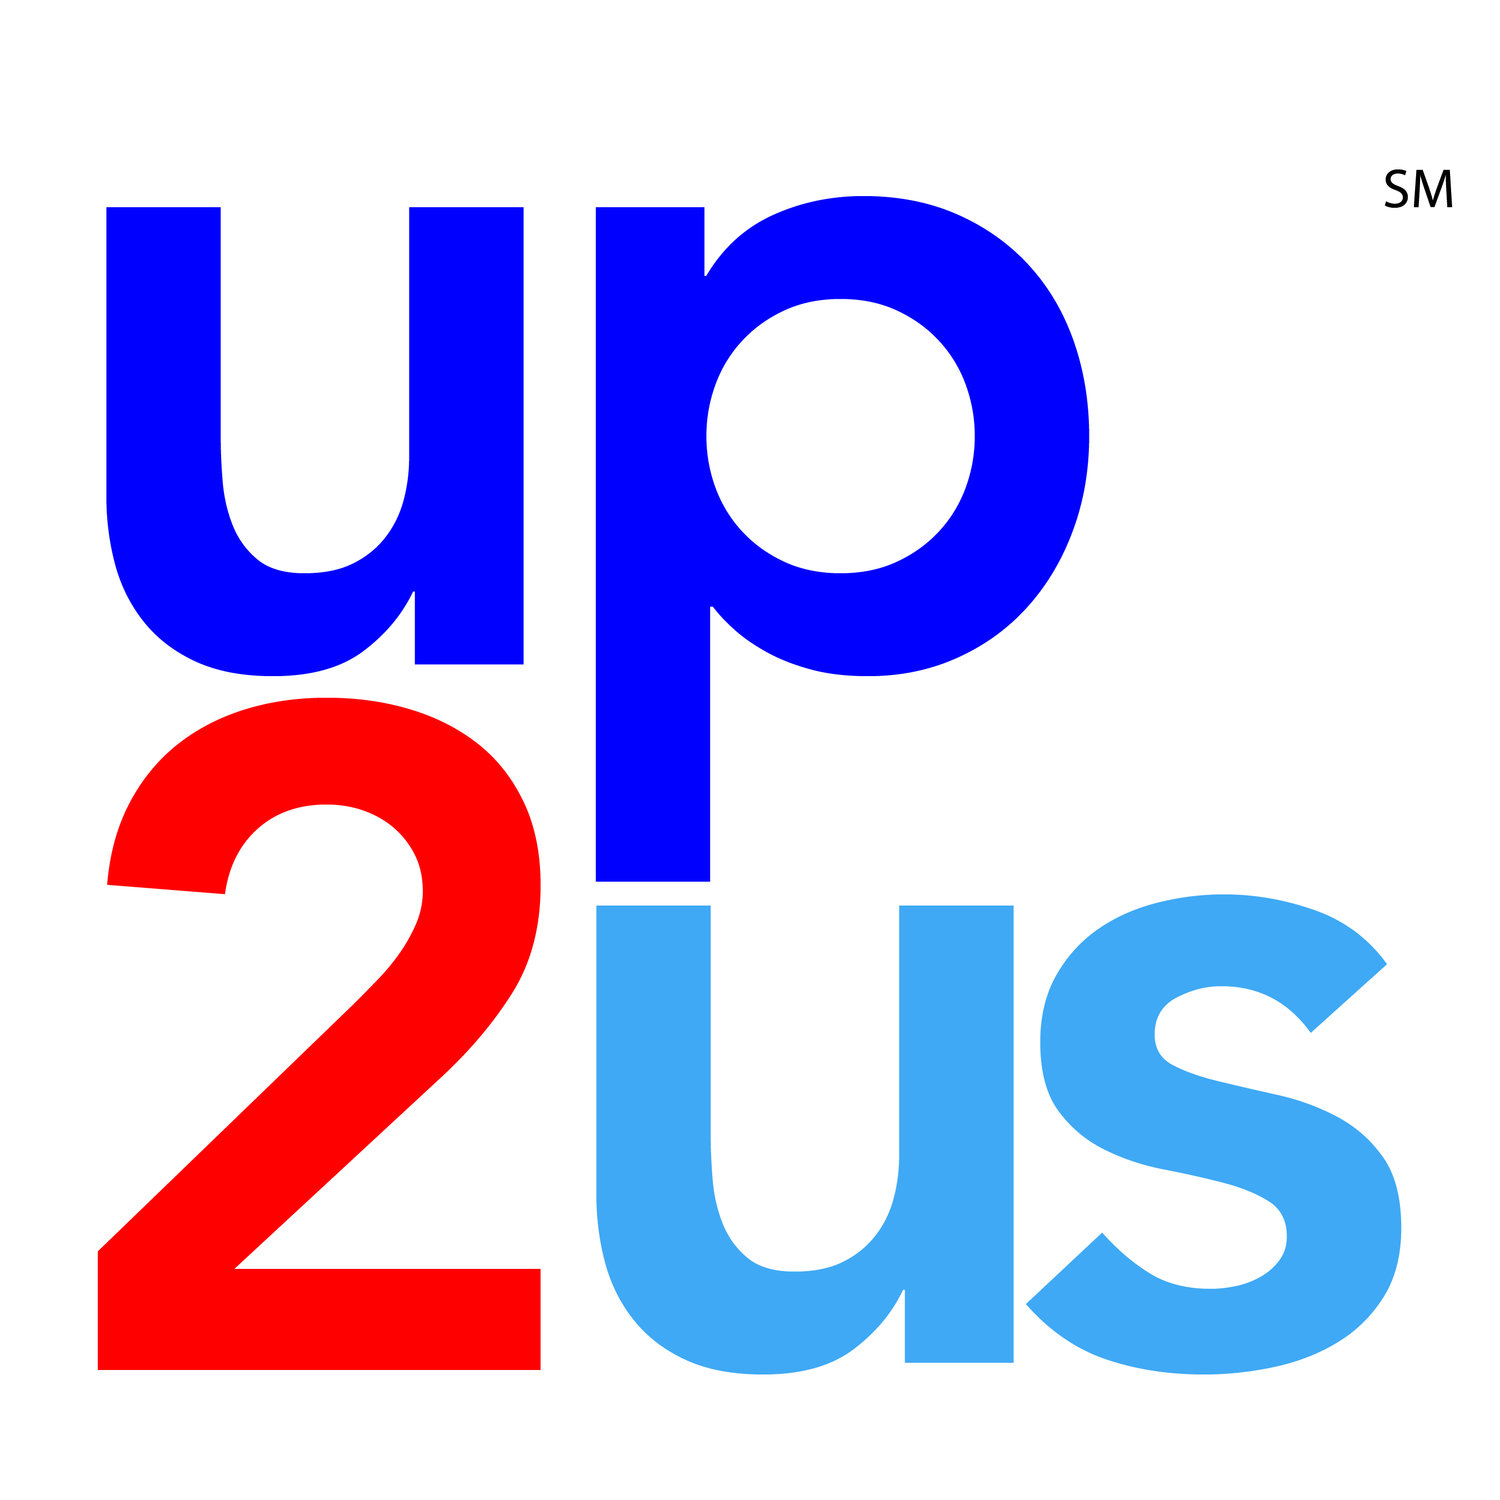 Up2us - Up2US, formerly Chappaqua Friends of Hillary,seeks to empower and support all americans by driving political and social change to build a brighter future for all